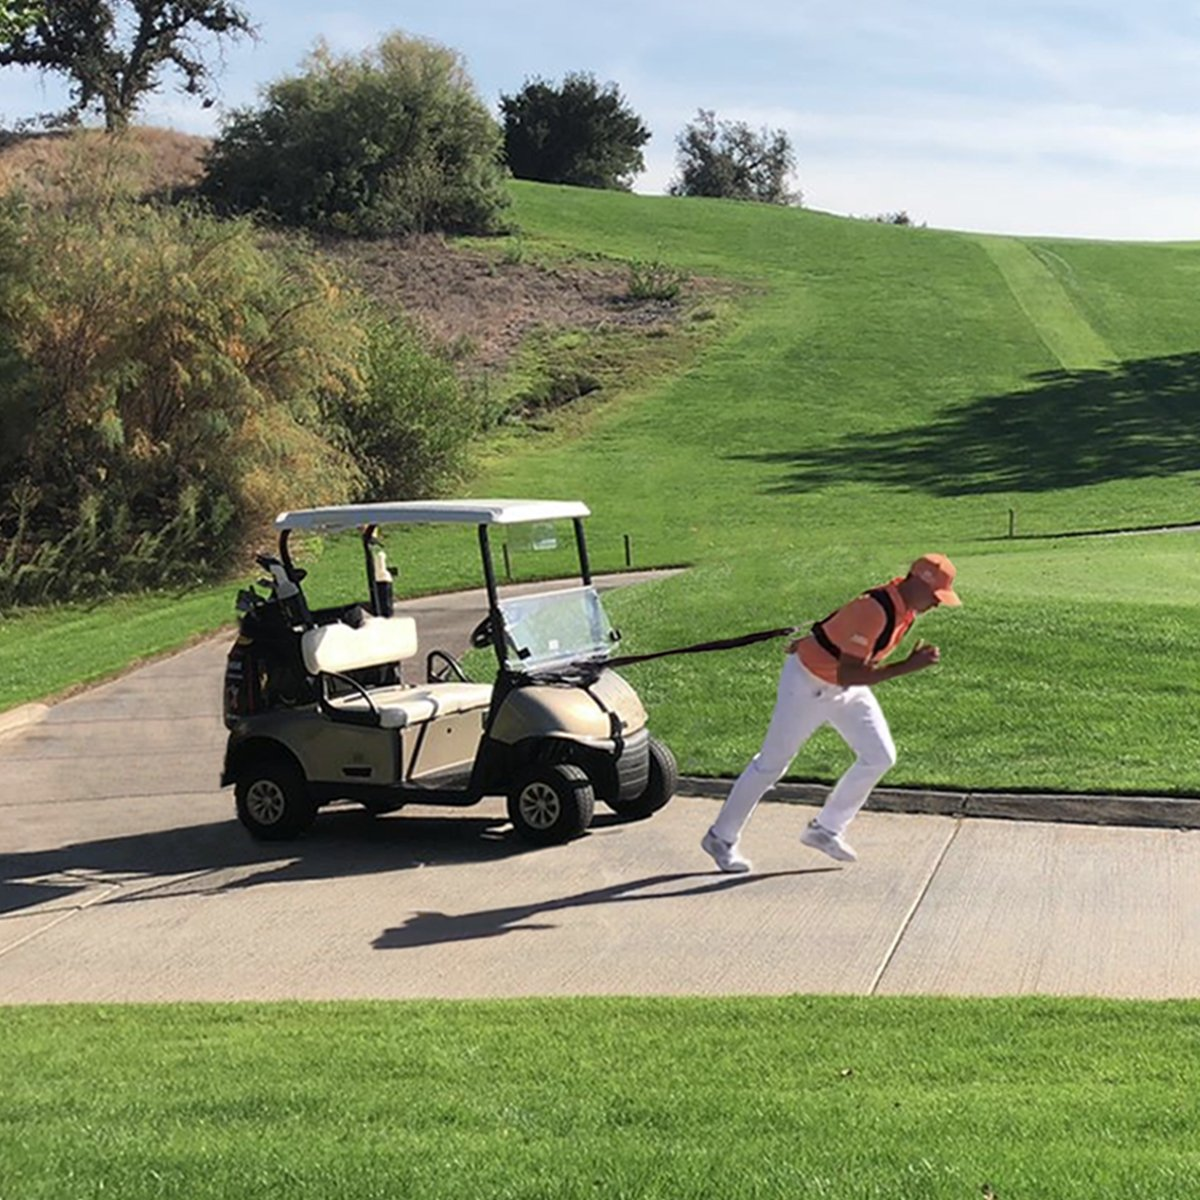 Getting the coverage you want shouldn't be as hard as Rickie Fowler's workouts. Let me help do some of the heavy lifting. Give me a call today. https://t.co/7Py0rSdPmJ